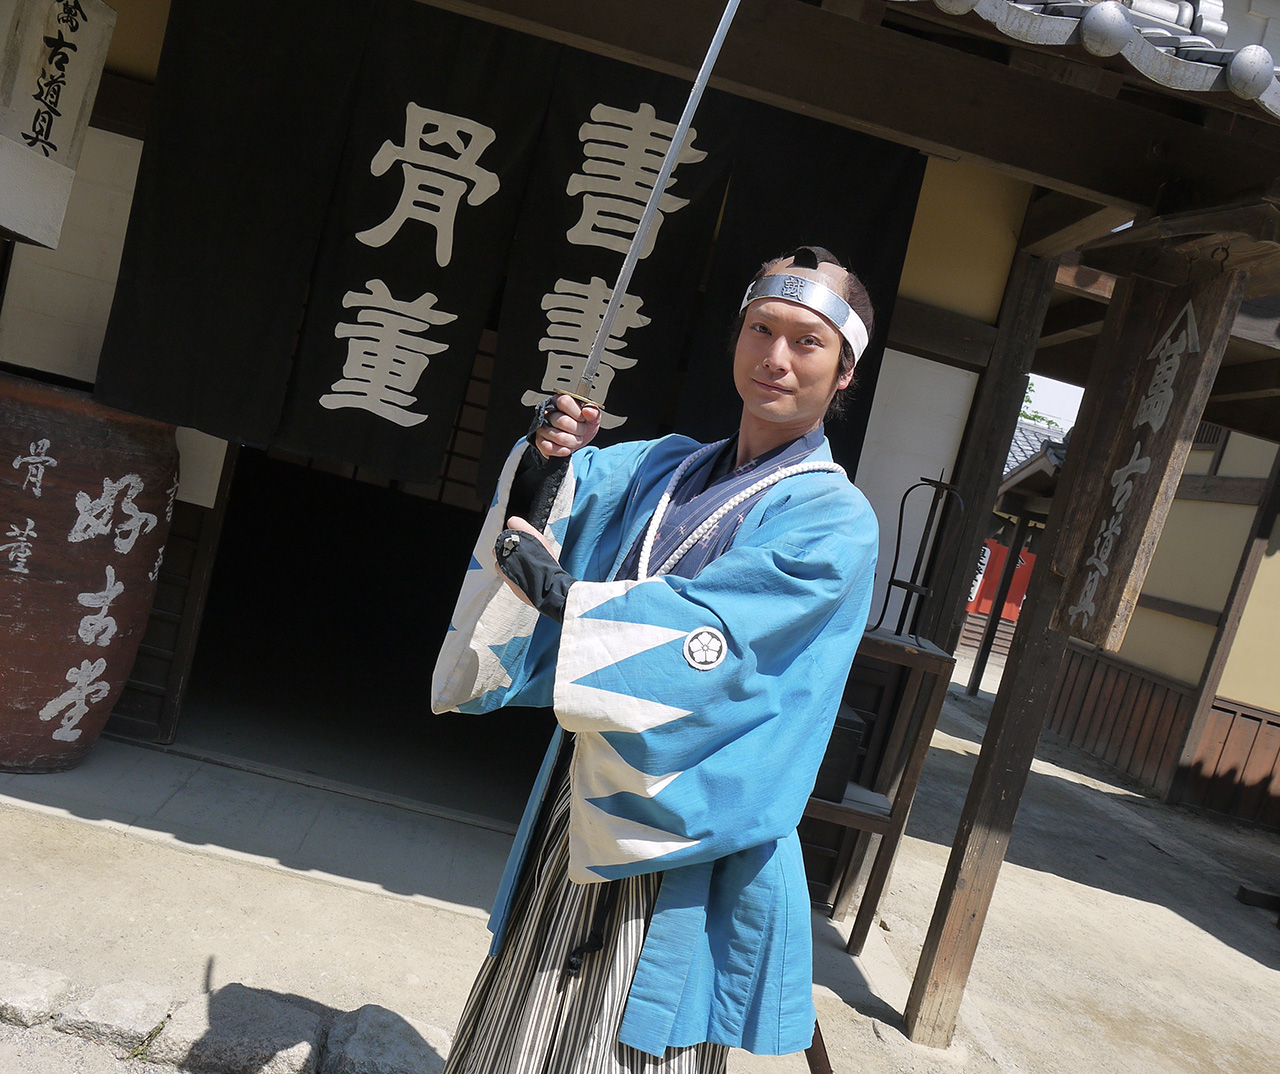 Takahiro Hotta posing with katana on set